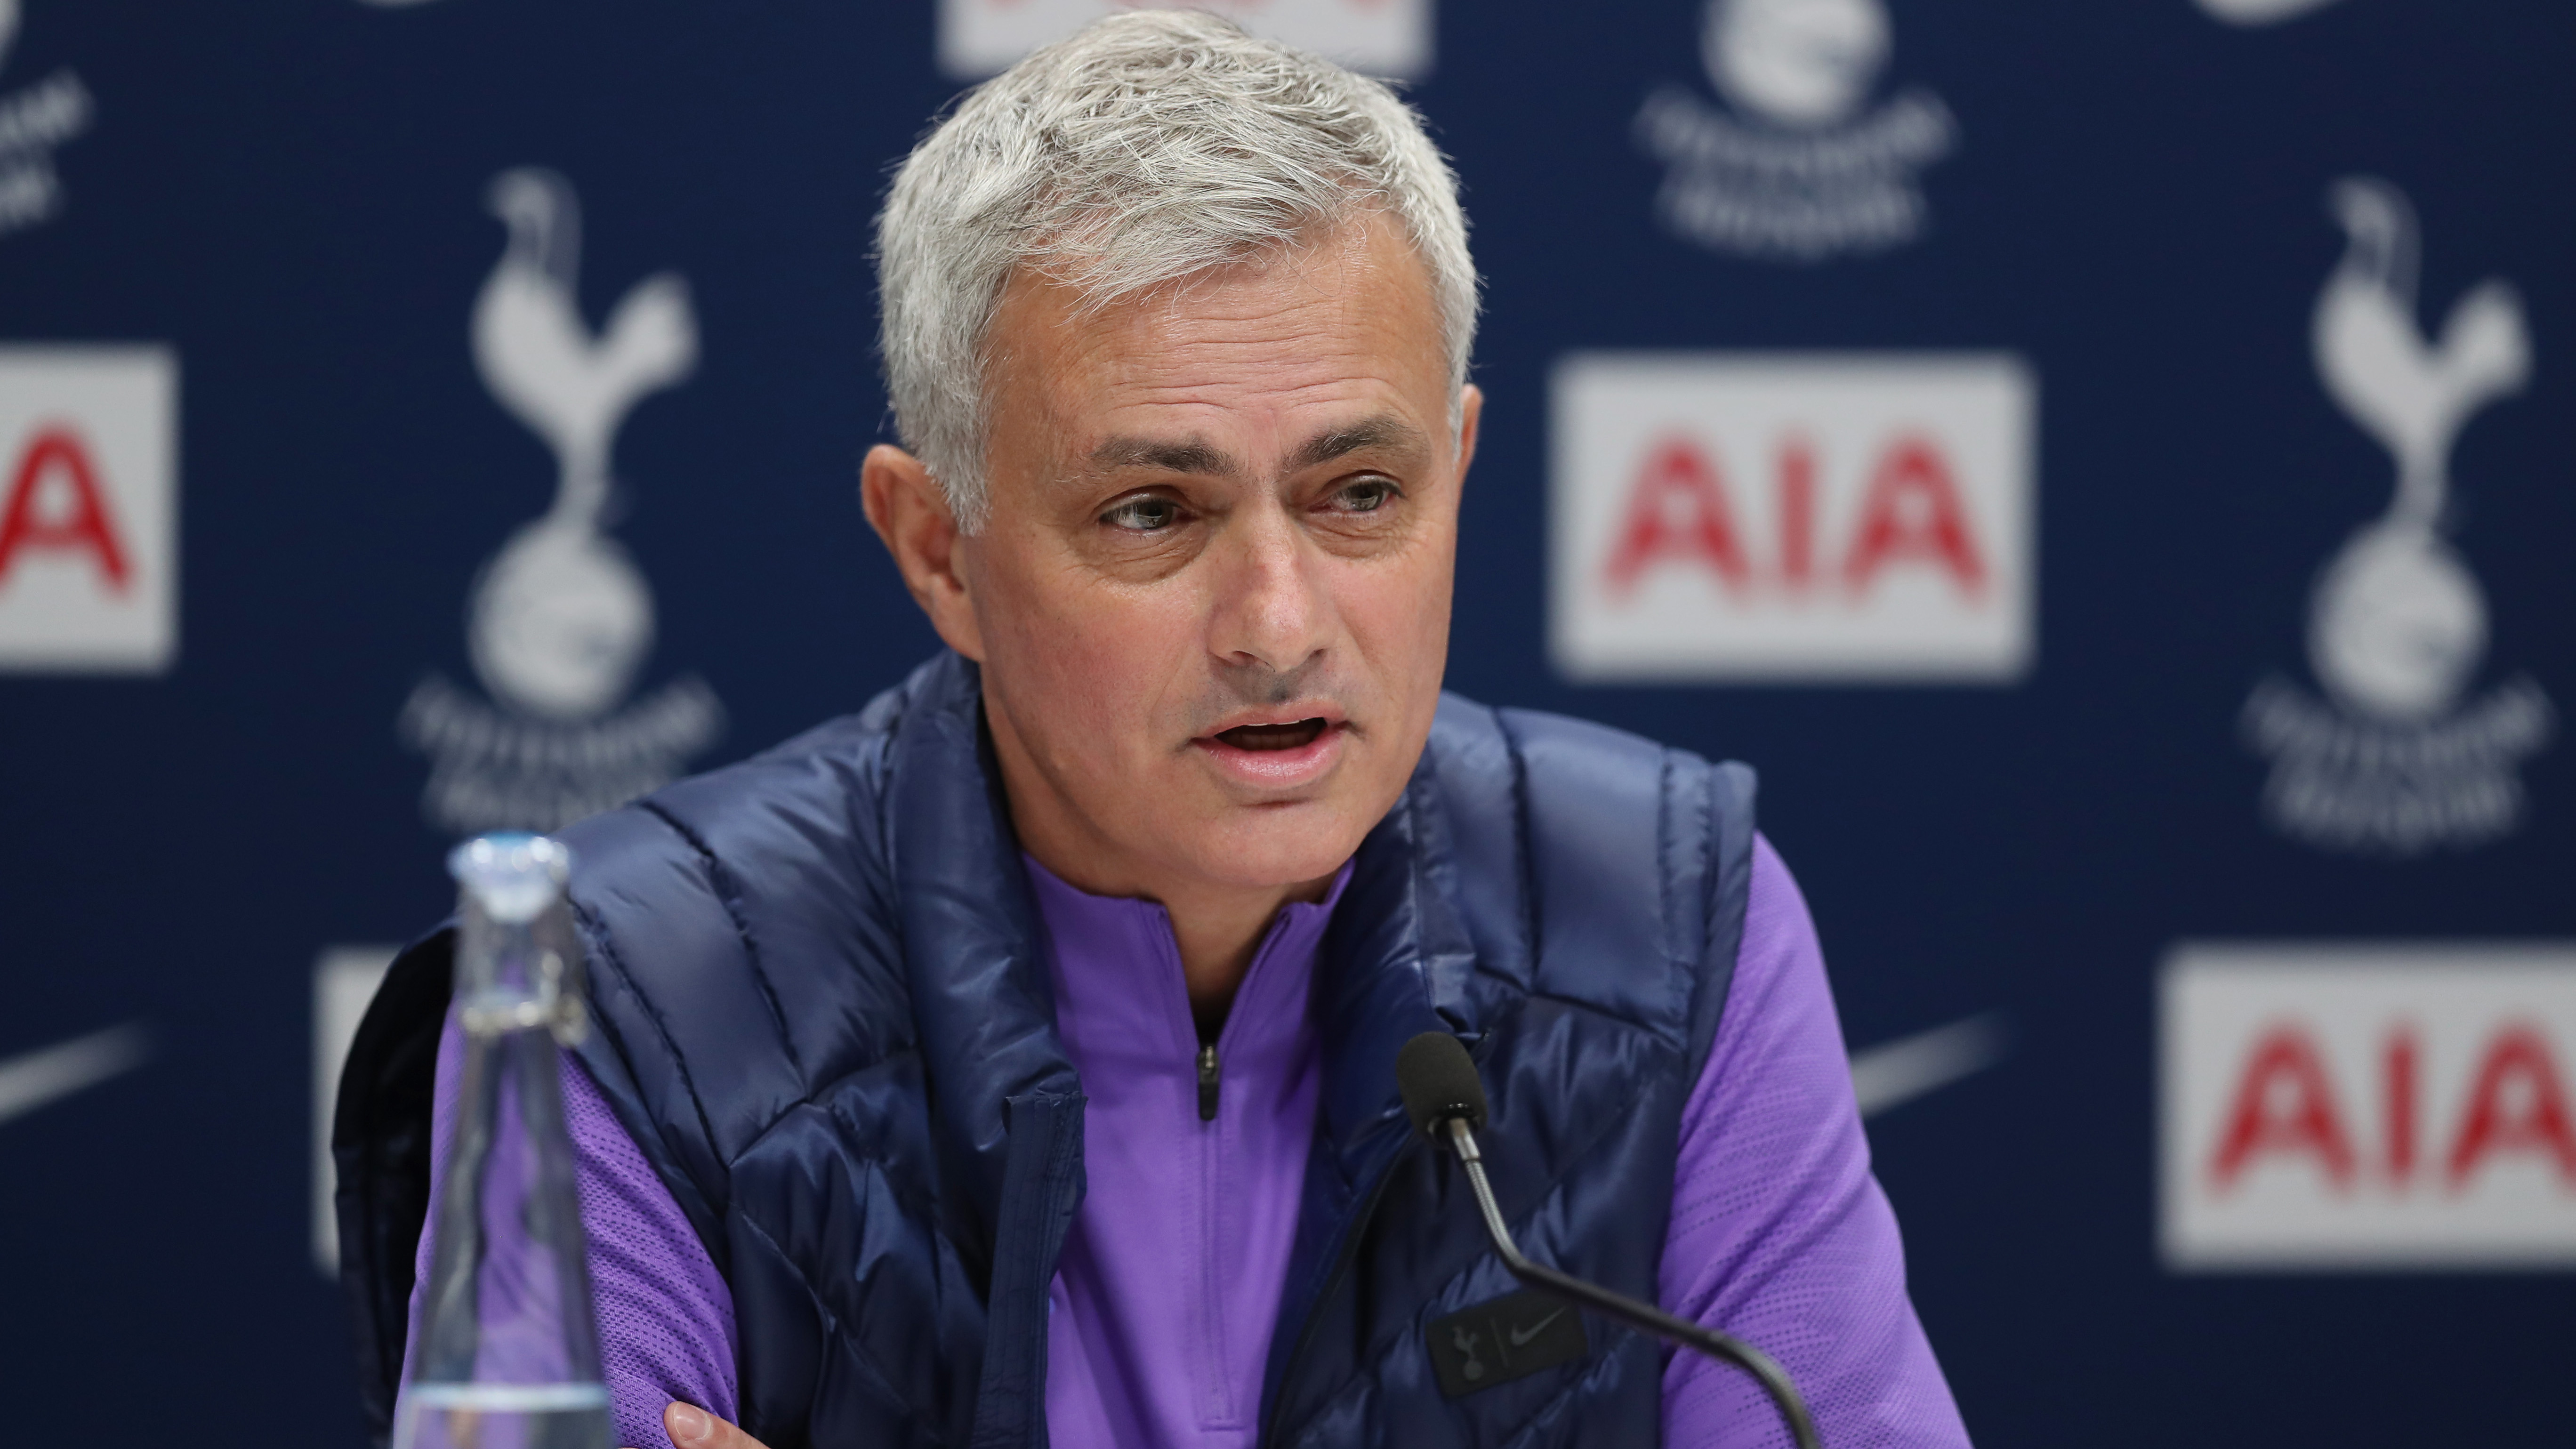 Jose Mourinho's first press conference with Tottenham